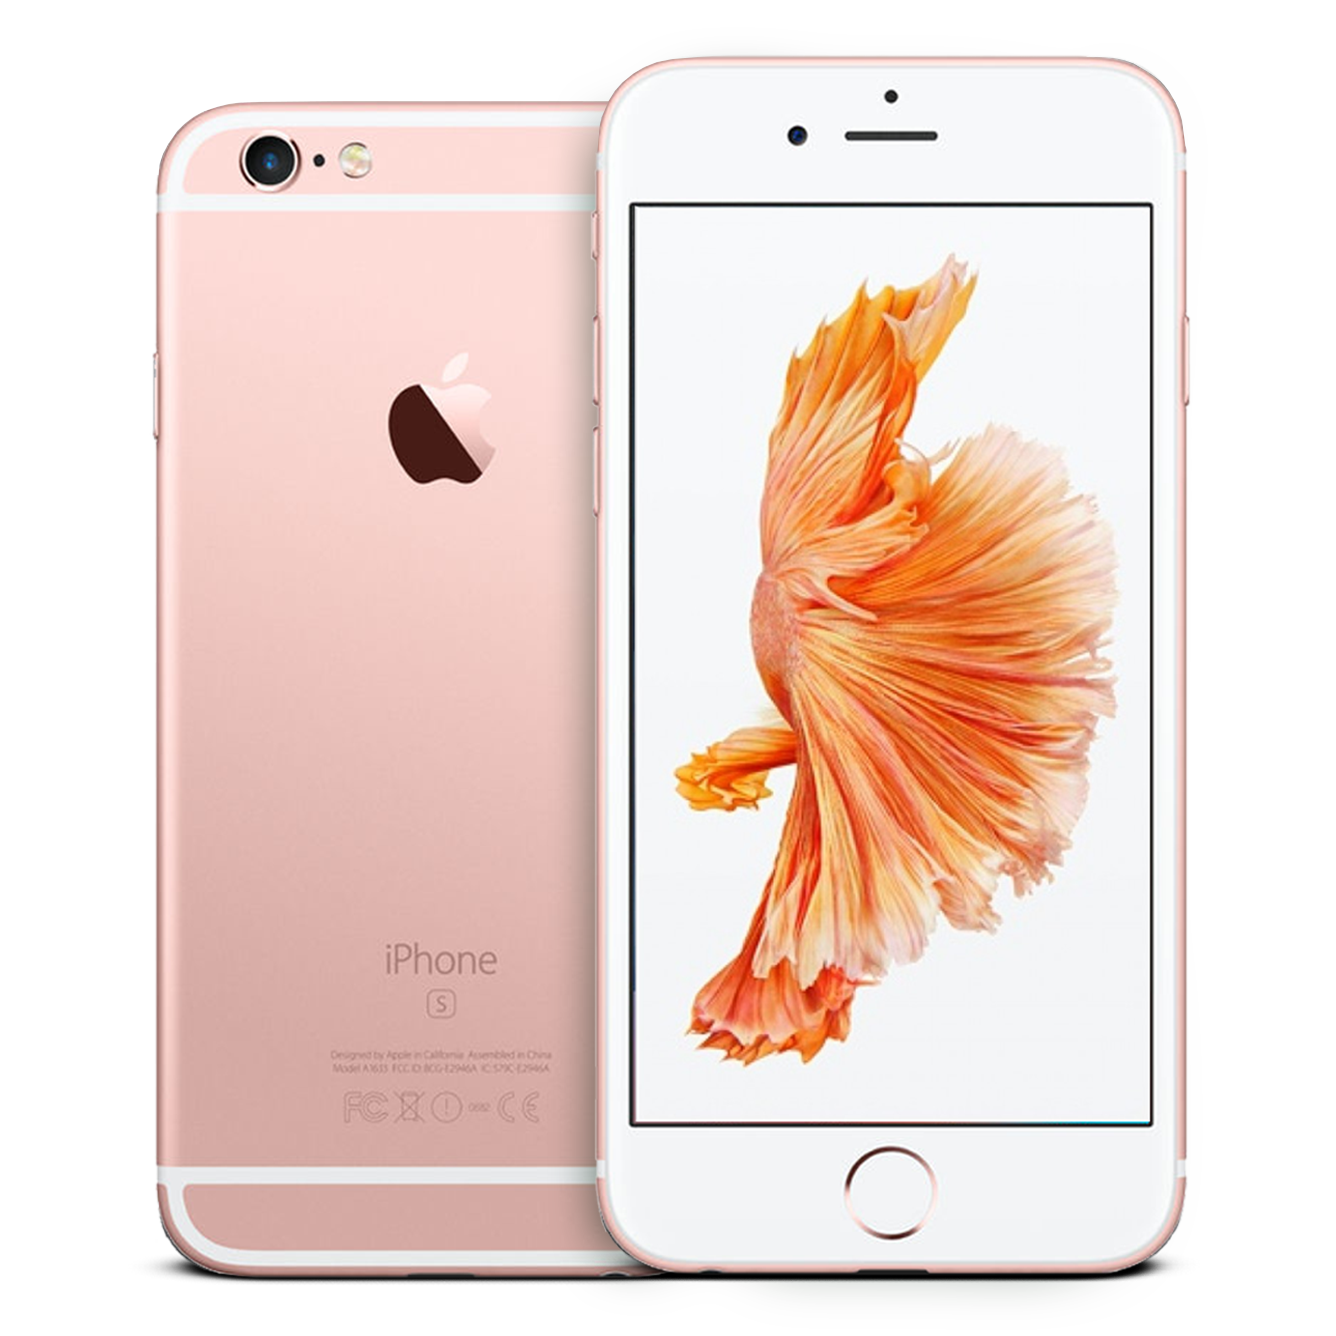 iPhone 6s 64GB Rosegold | Good